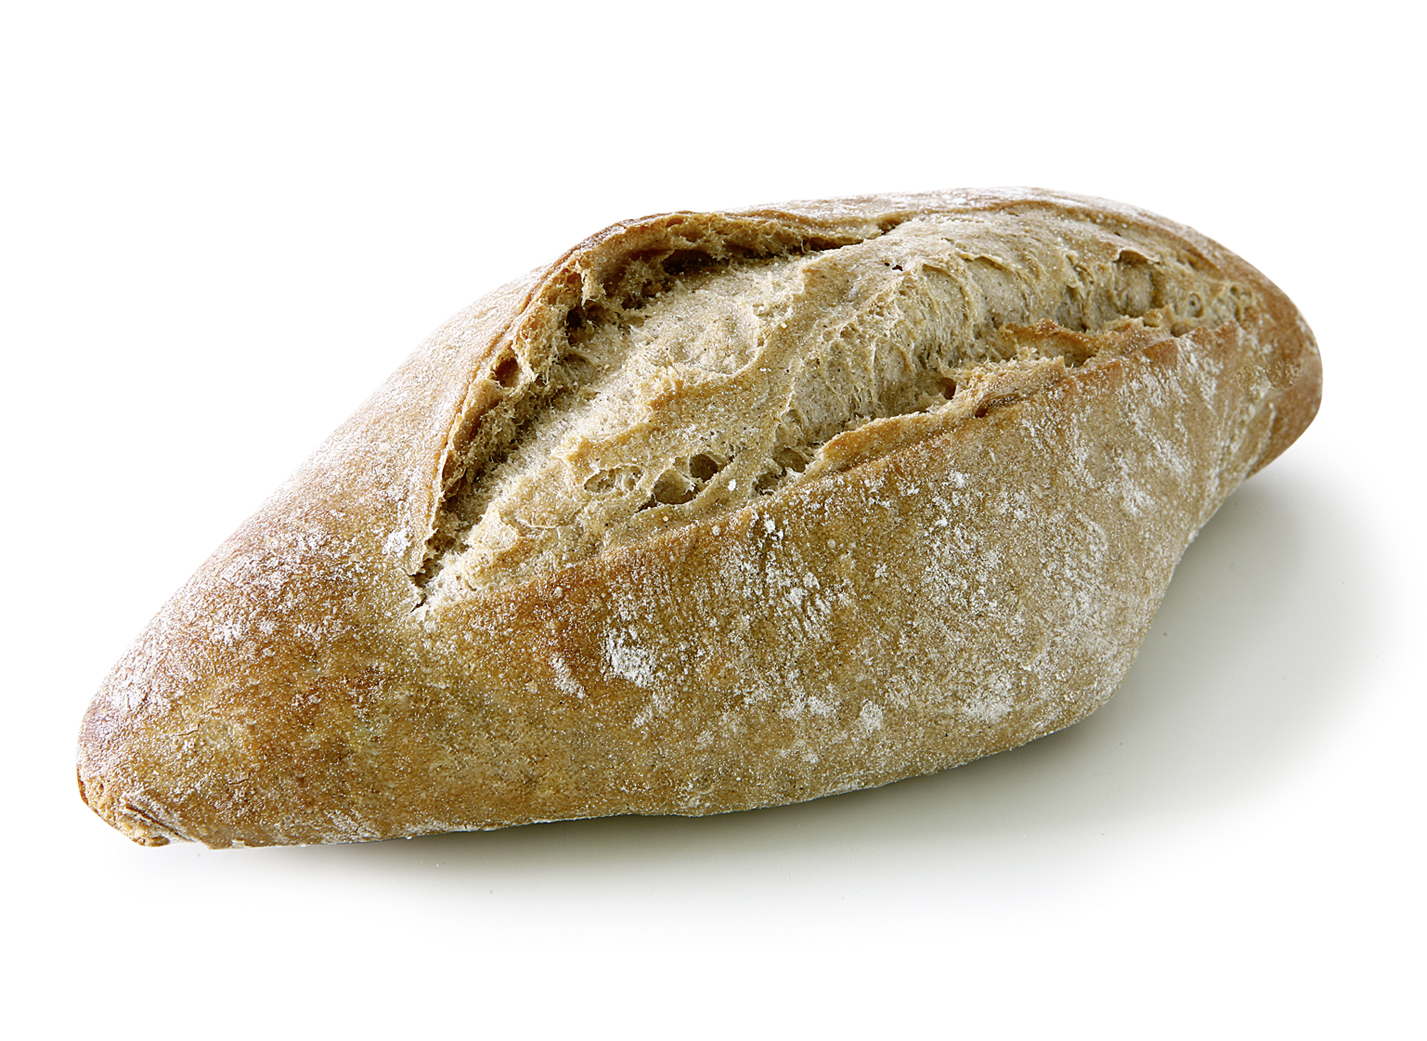 Tuscan Roll Rye - Rye roll with 32% rye flour/ shape and size may vary due to the rustic character/ with pointed ends length: approx. 18.5 cm